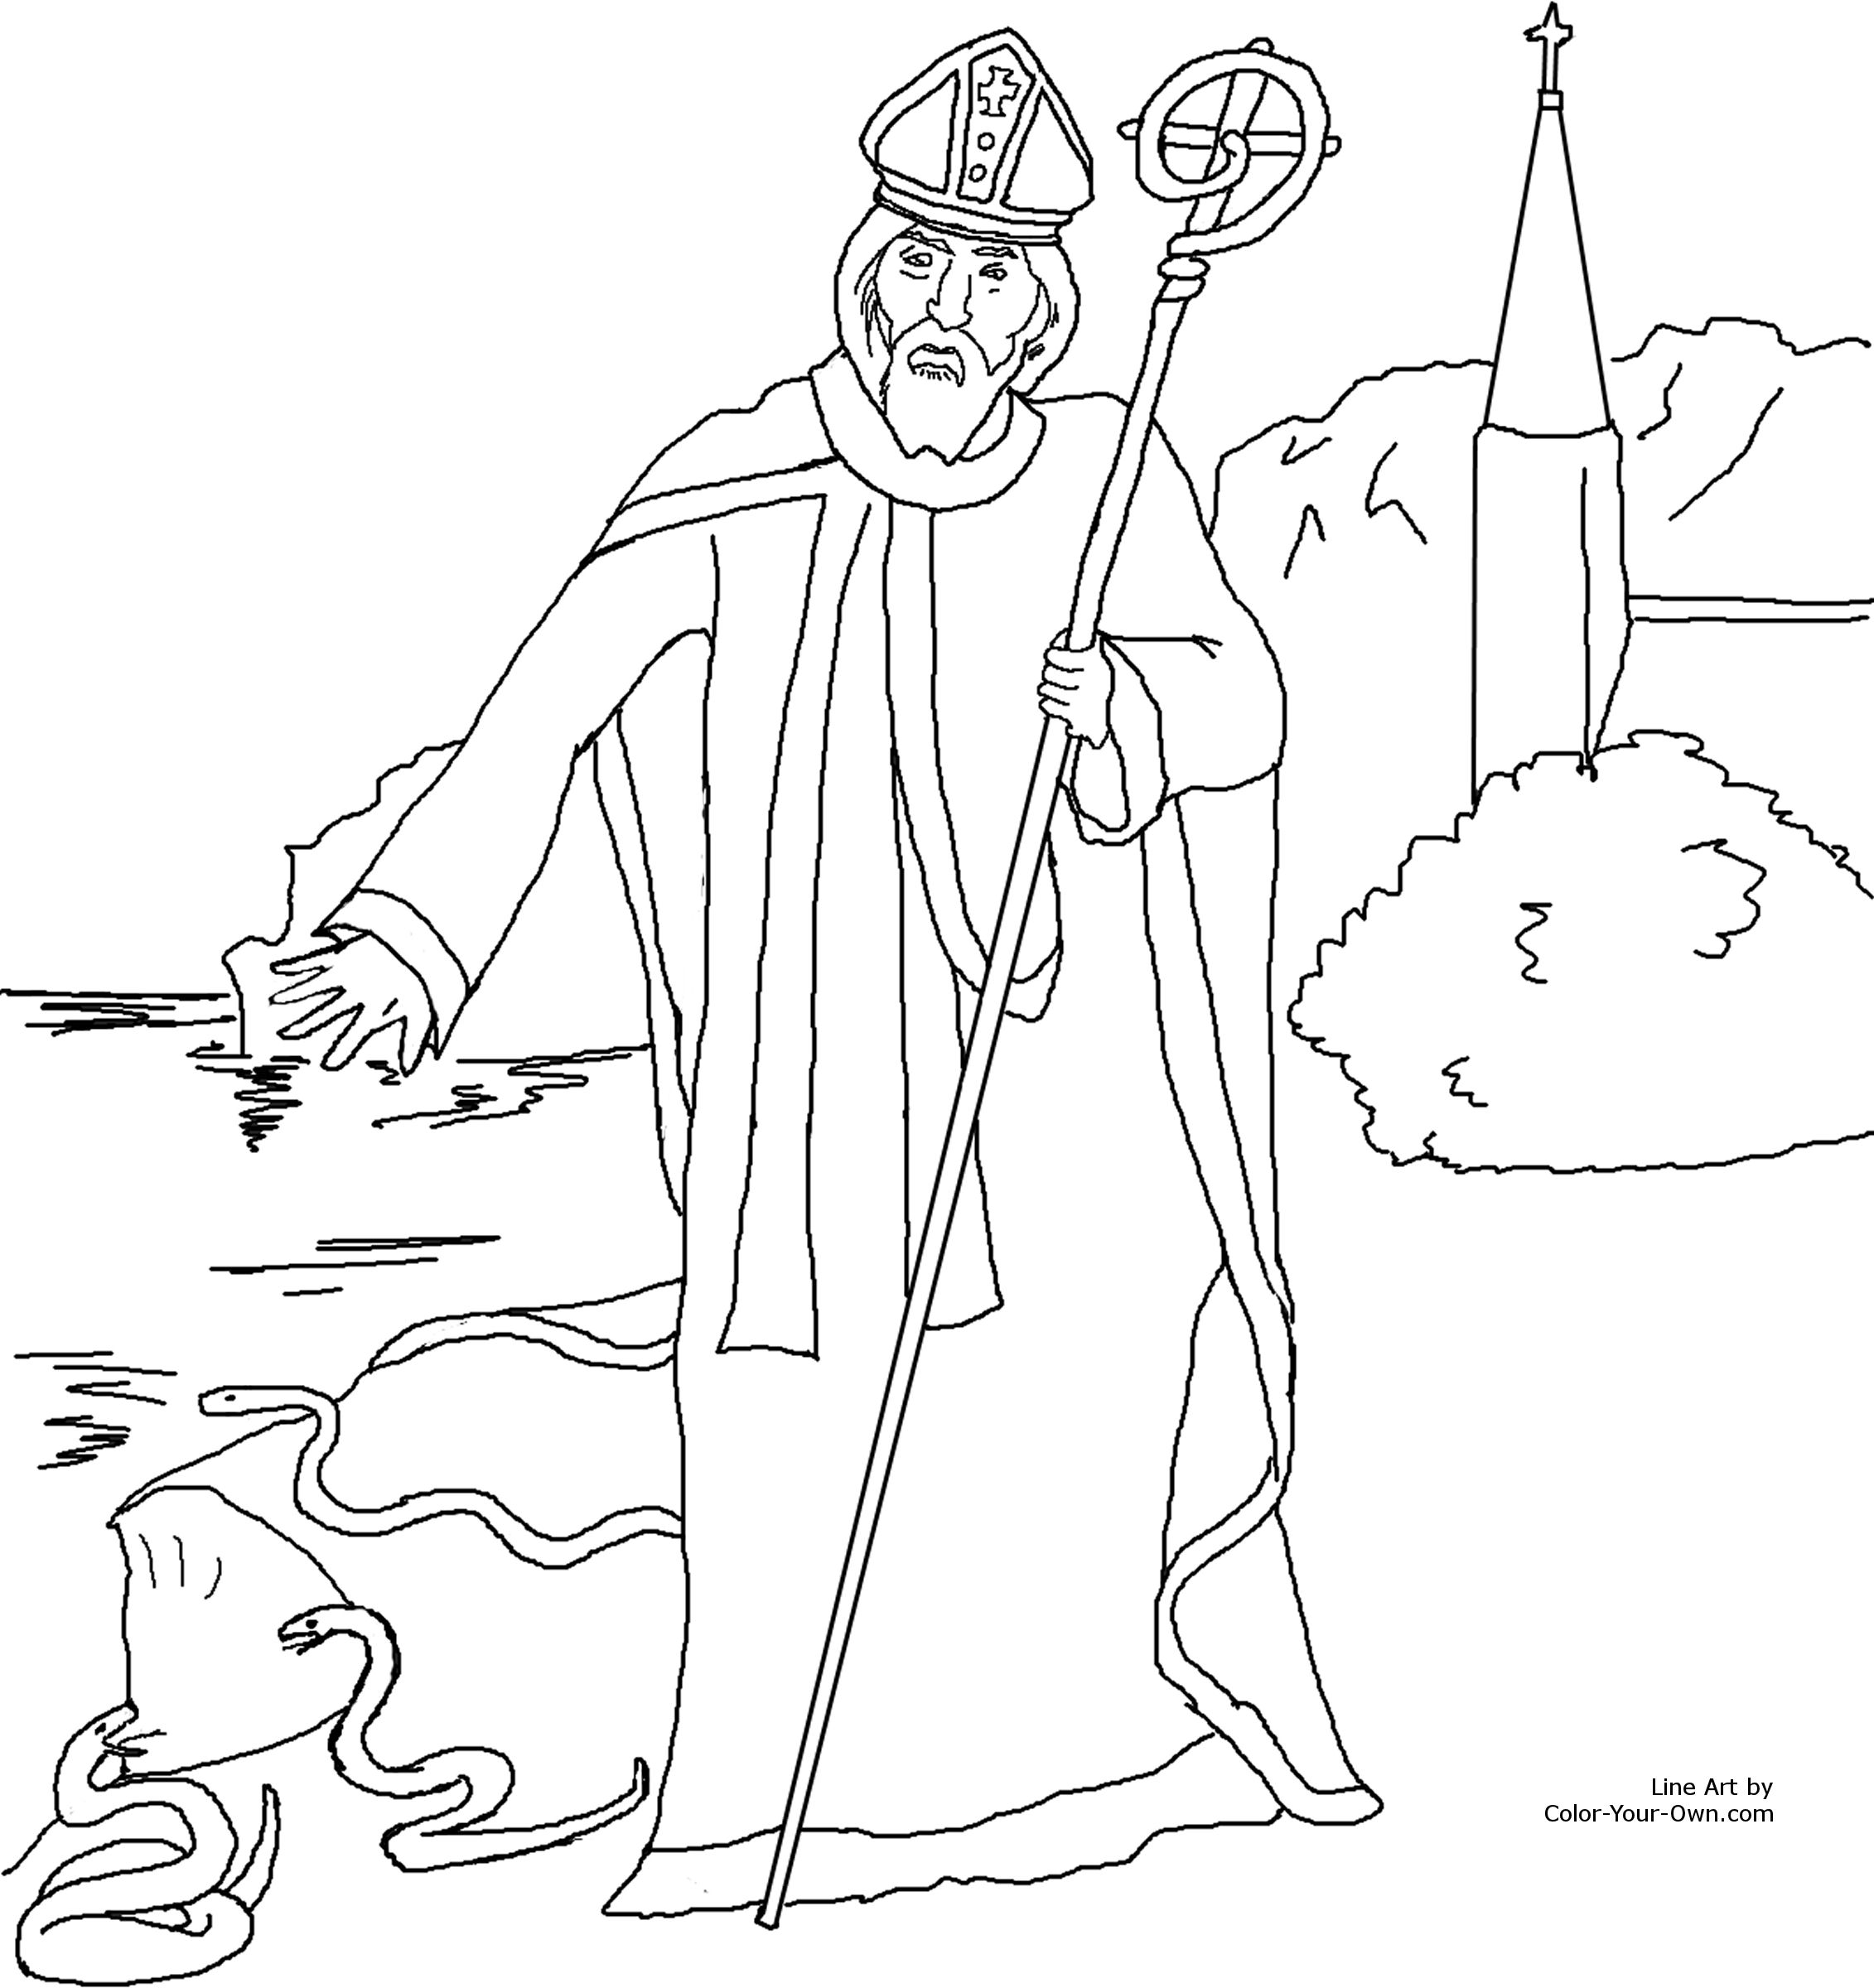 Saint Patrick Driving Out The Snakes Of Ireland Coloring Page